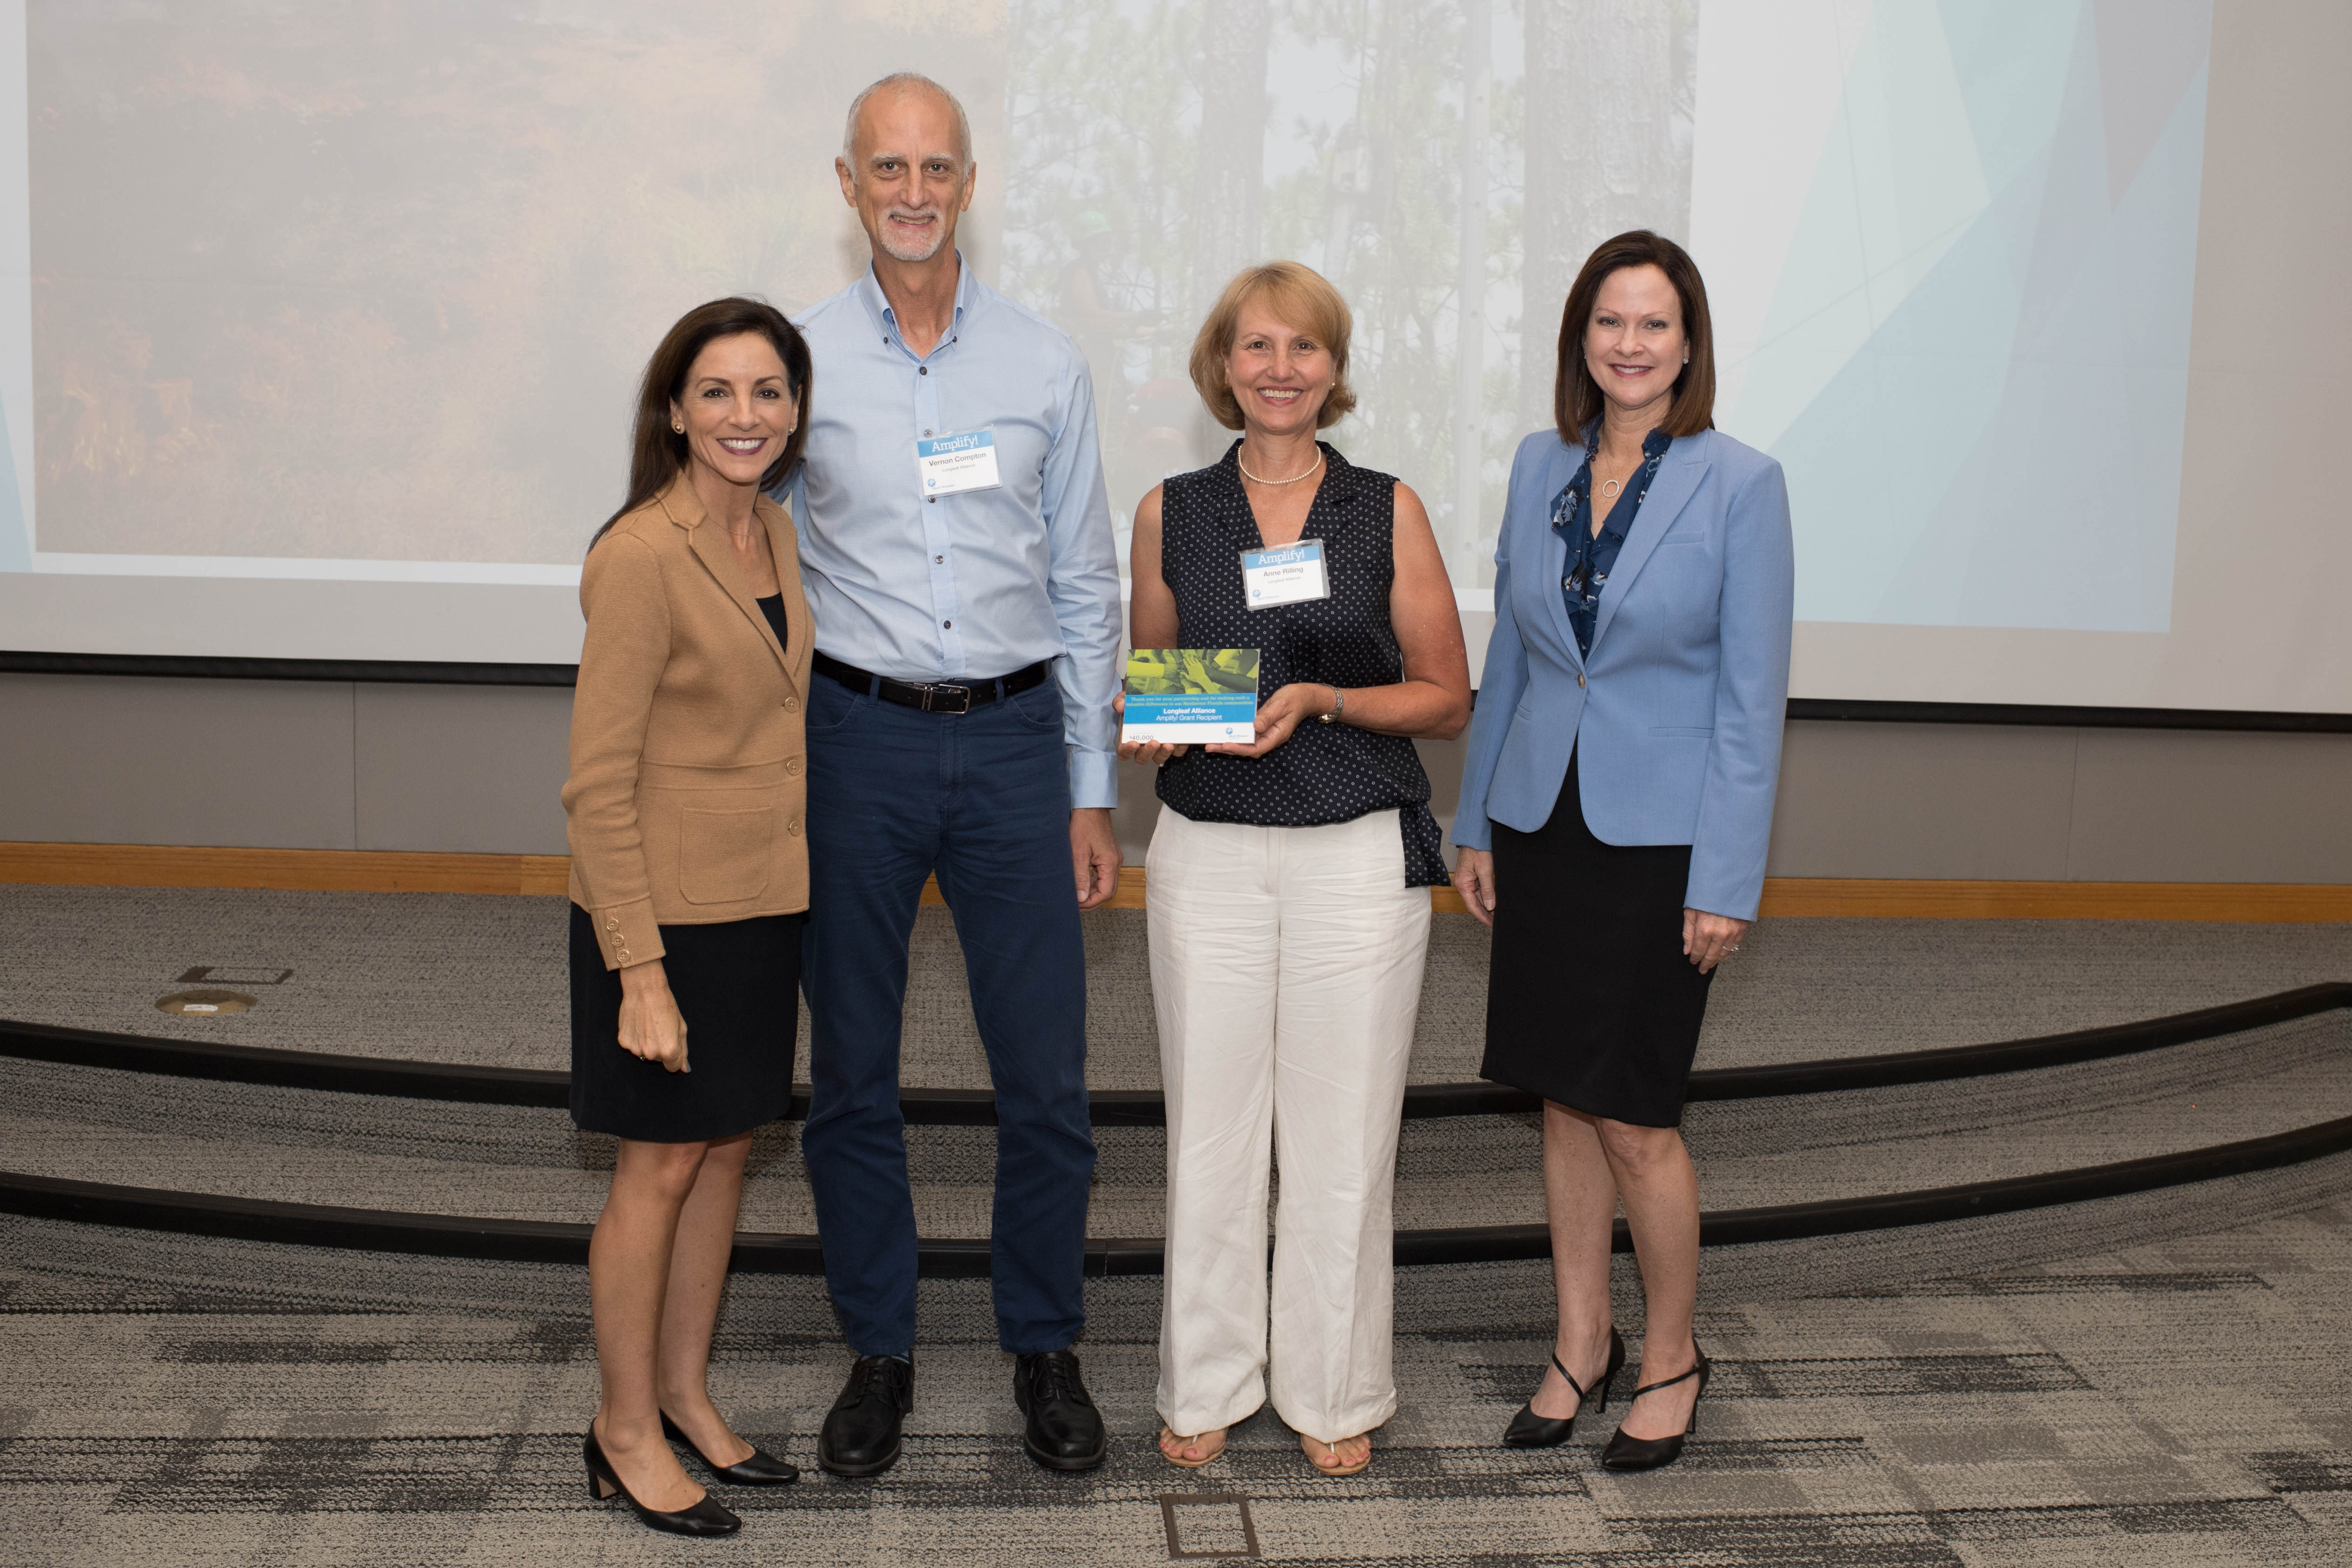 Amplify Grant Recipient Longleaf Alliance Image 1